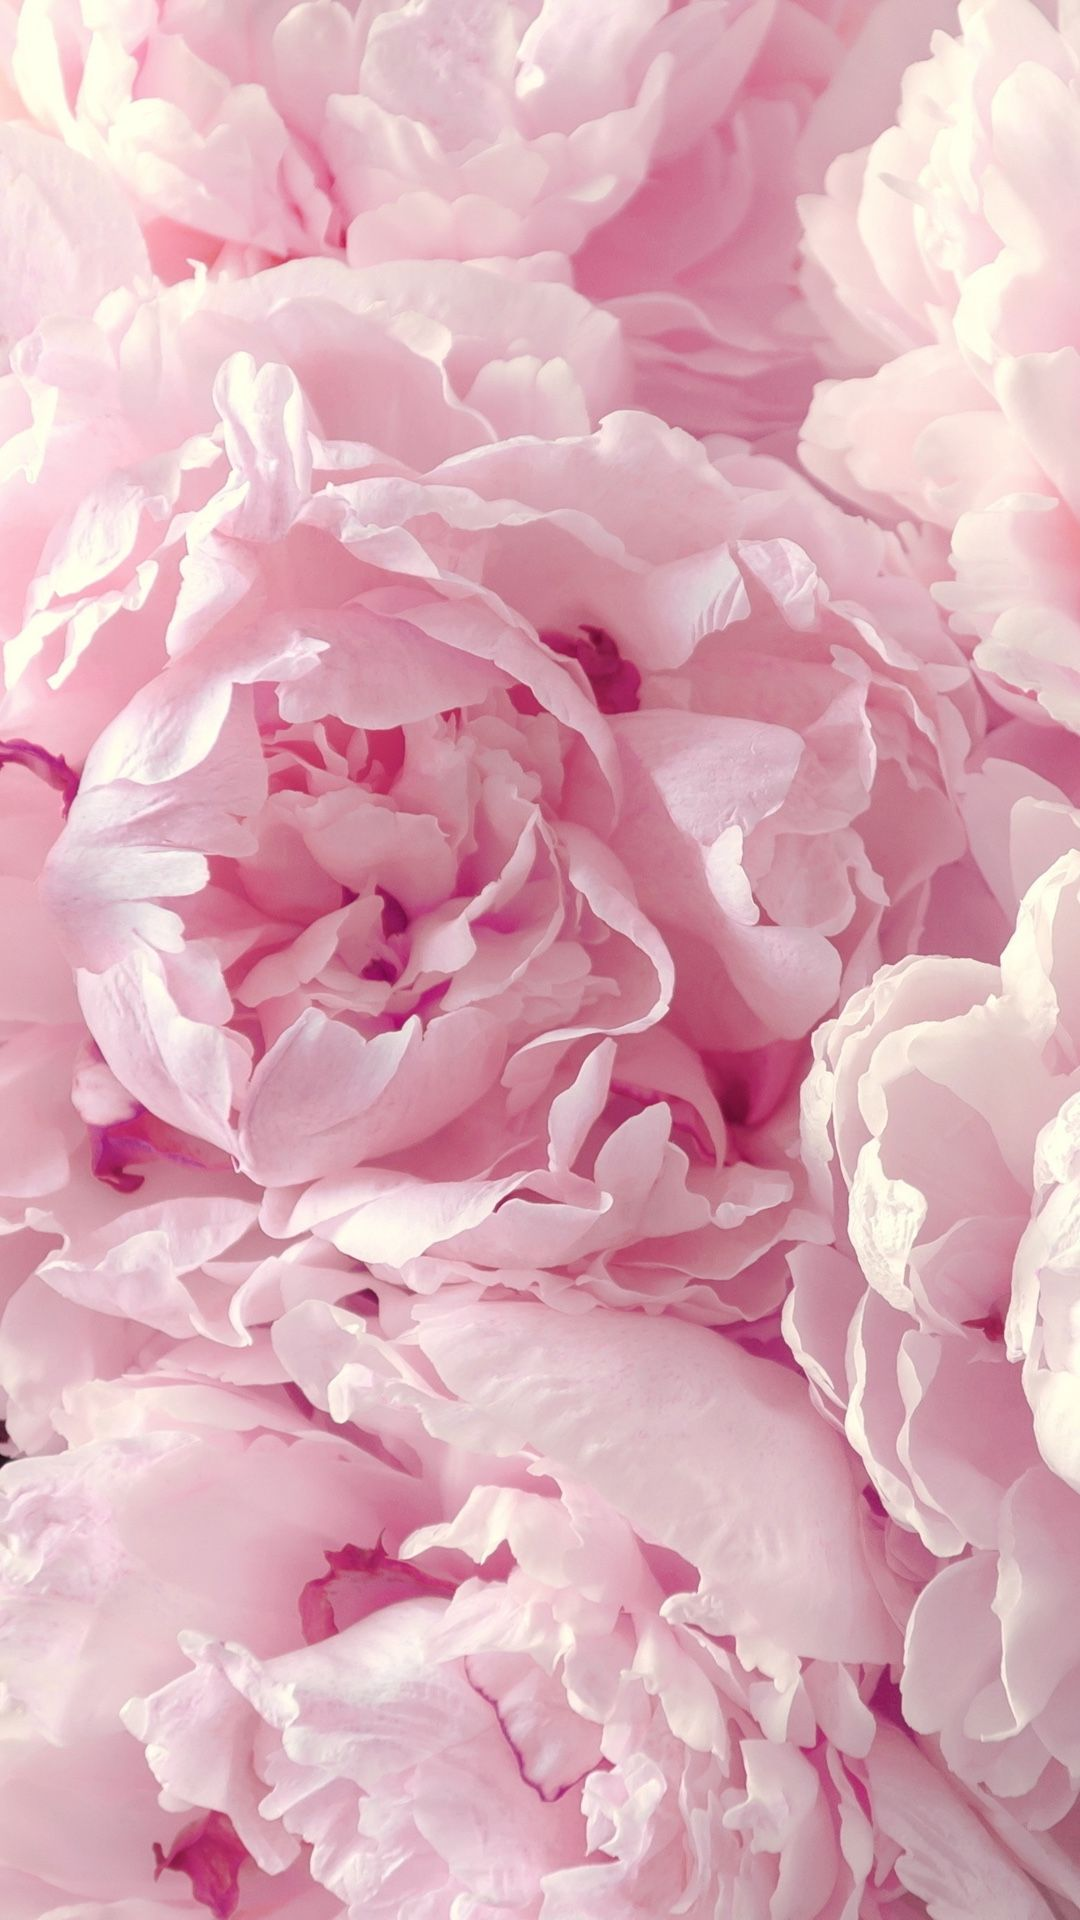 Peonies wallpaper for your iPhone 6 Plus from Everpix app